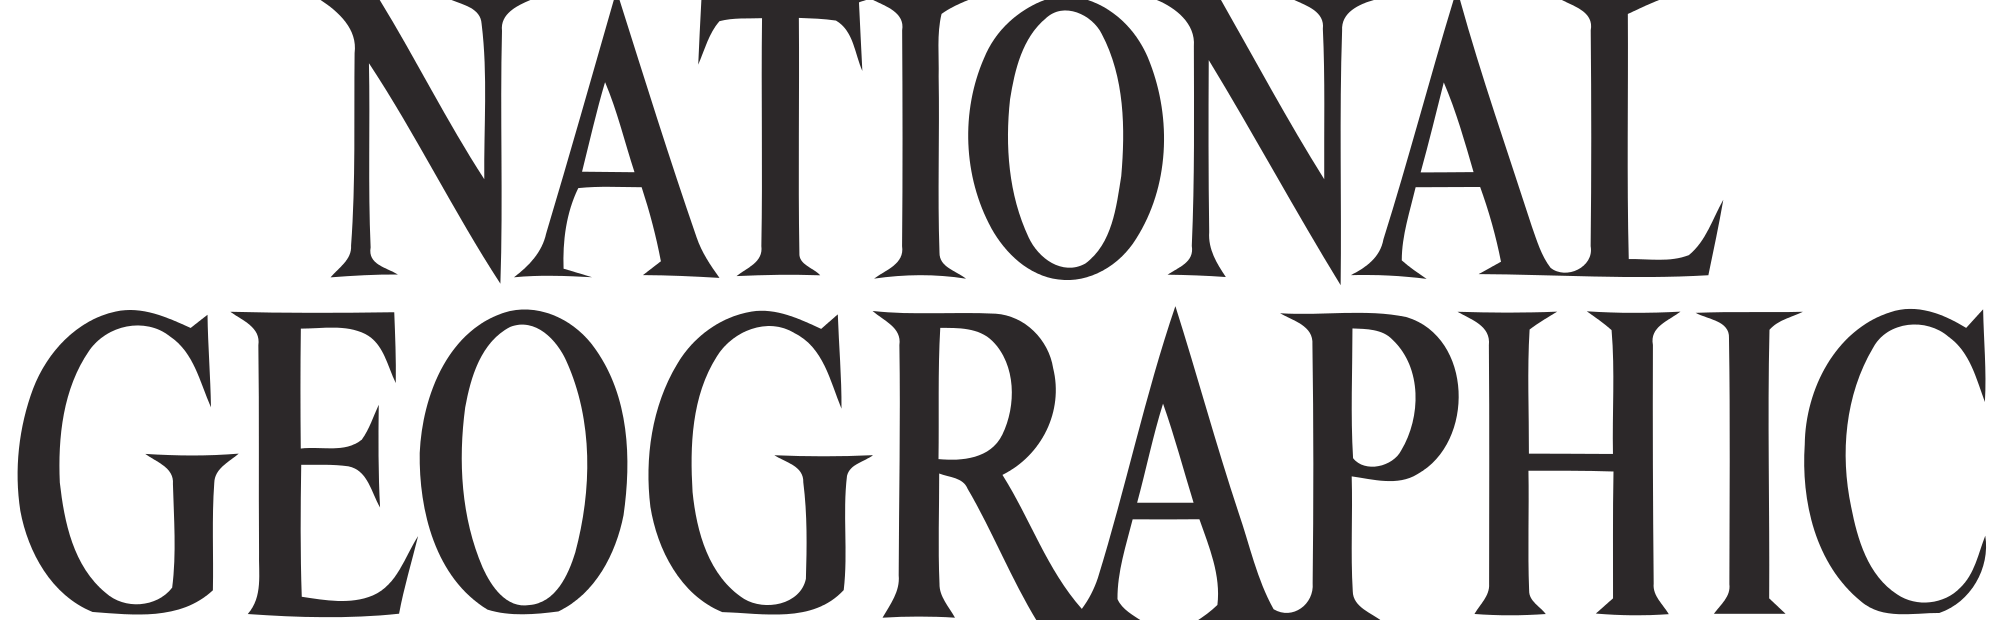 2000pxNational_Geographic_Magazine_Logo.svg.png (2000×620)